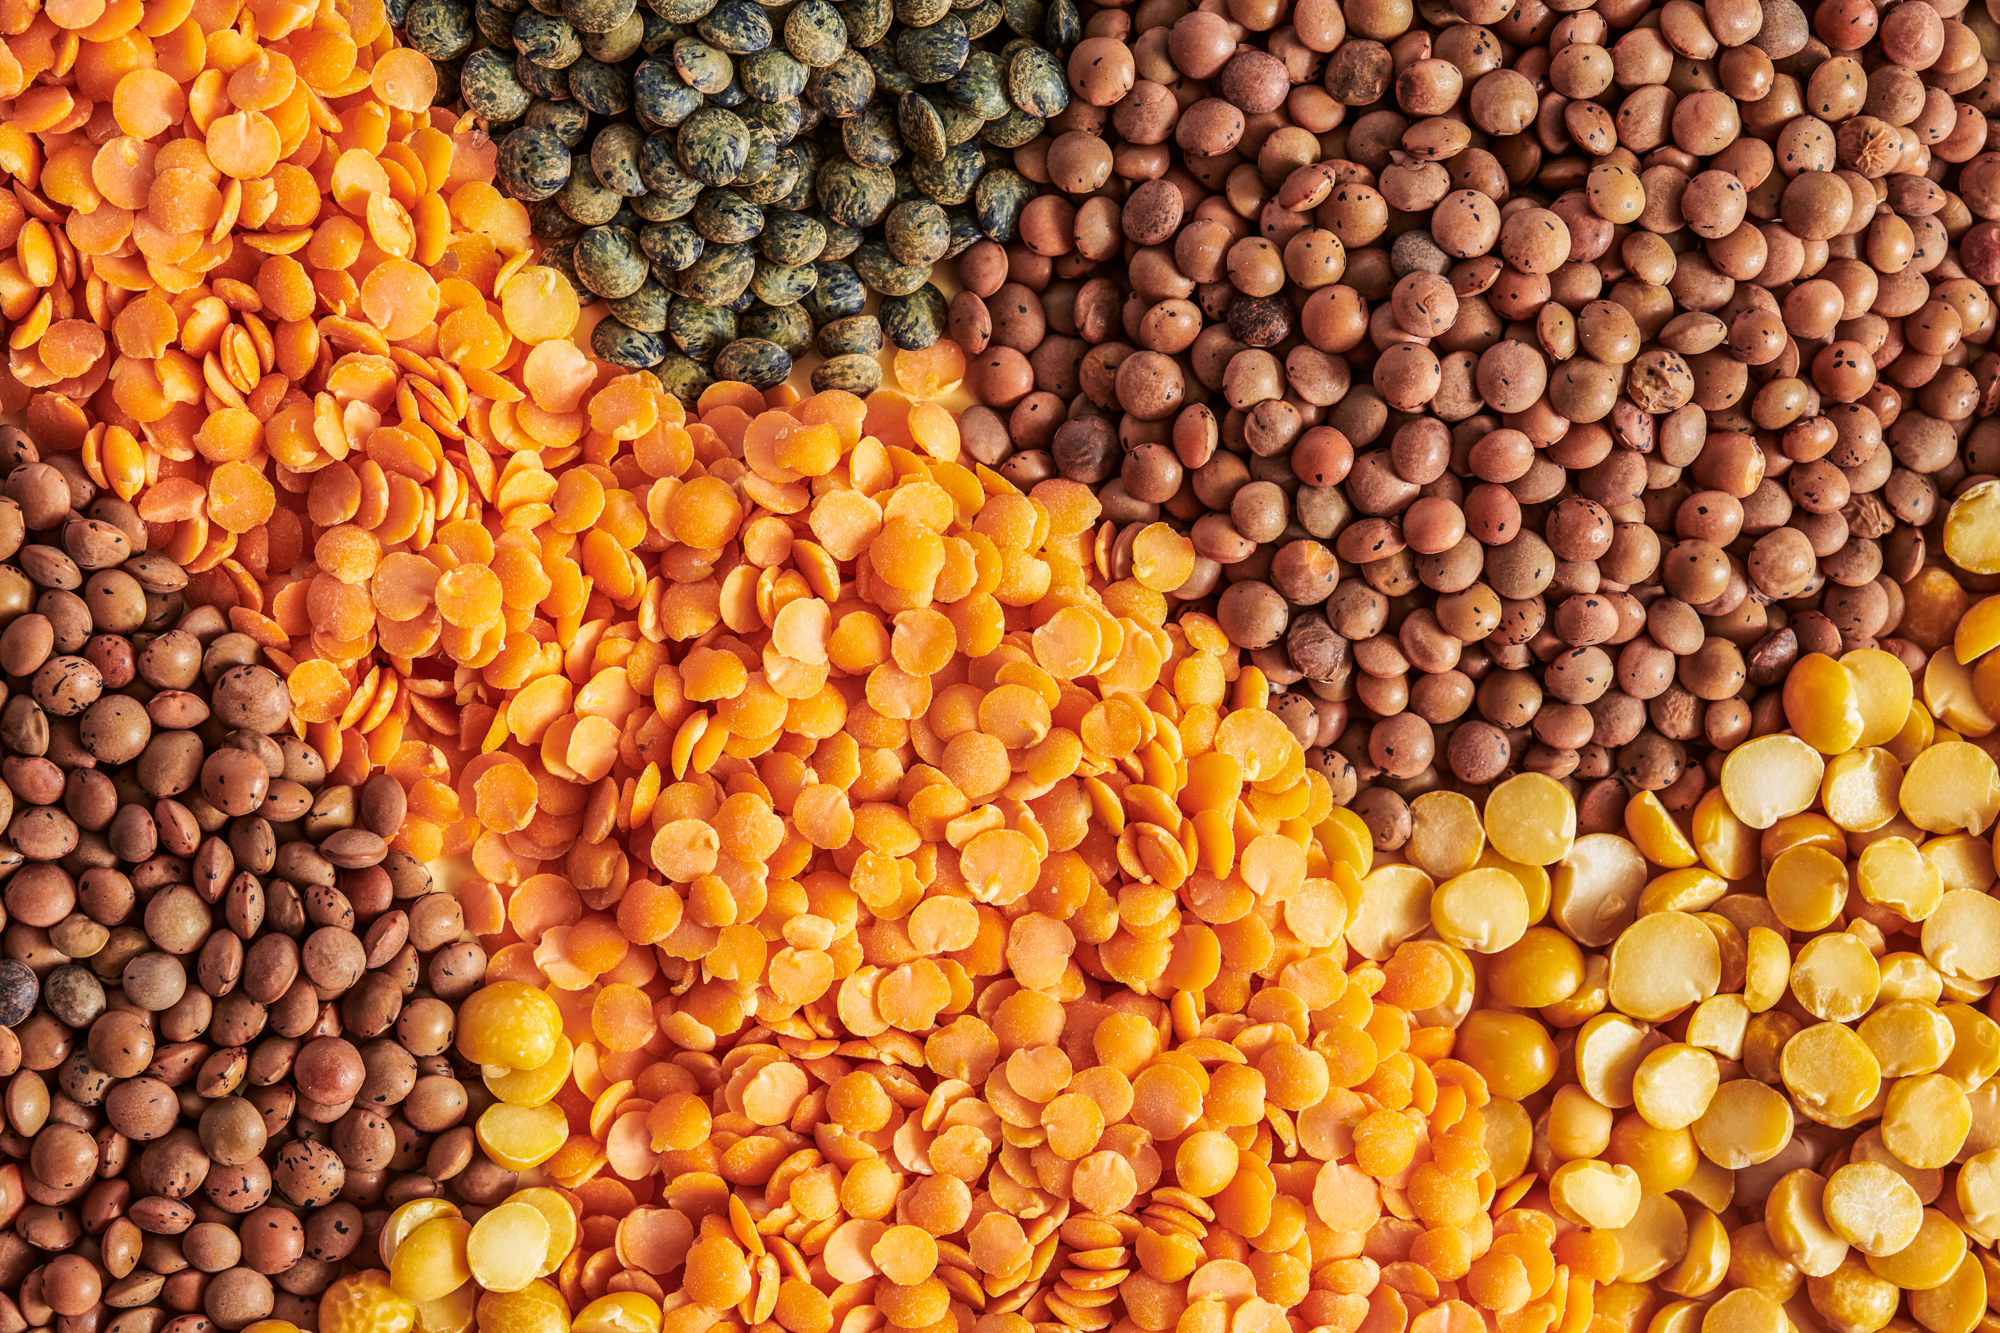 What To Do With Lentils